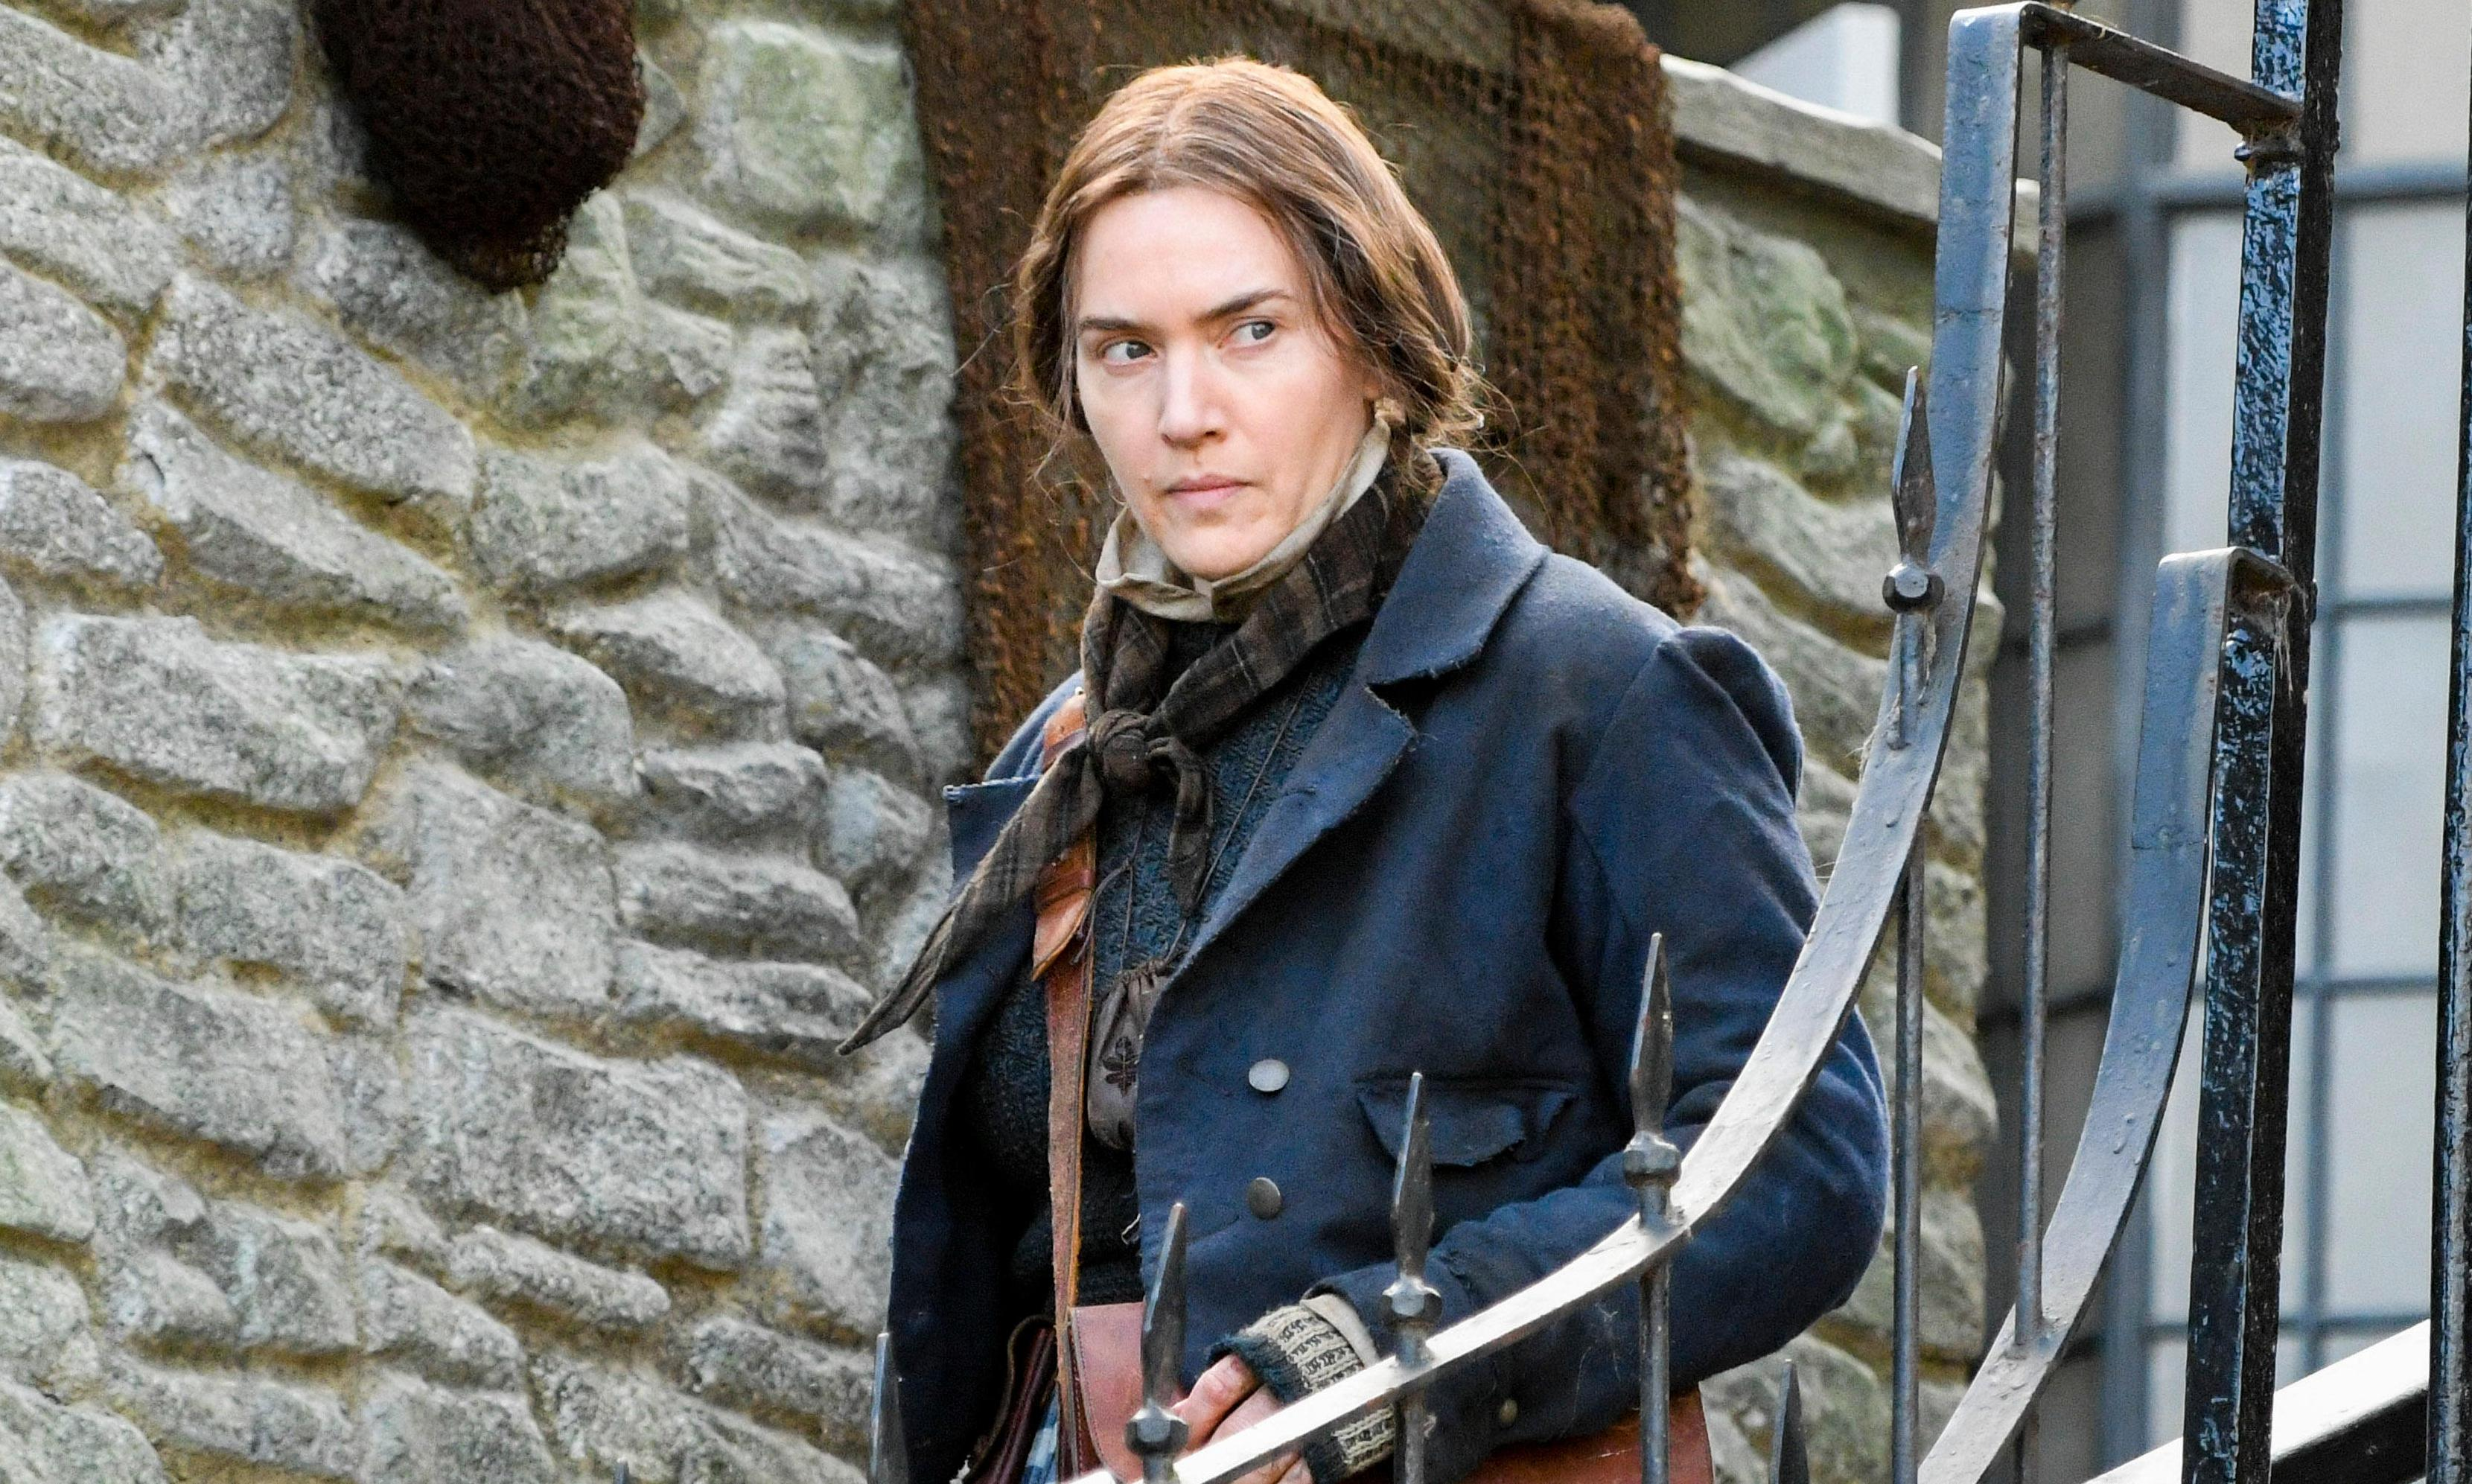 Mary Anning biopic director defends film's lesbian romance storyline